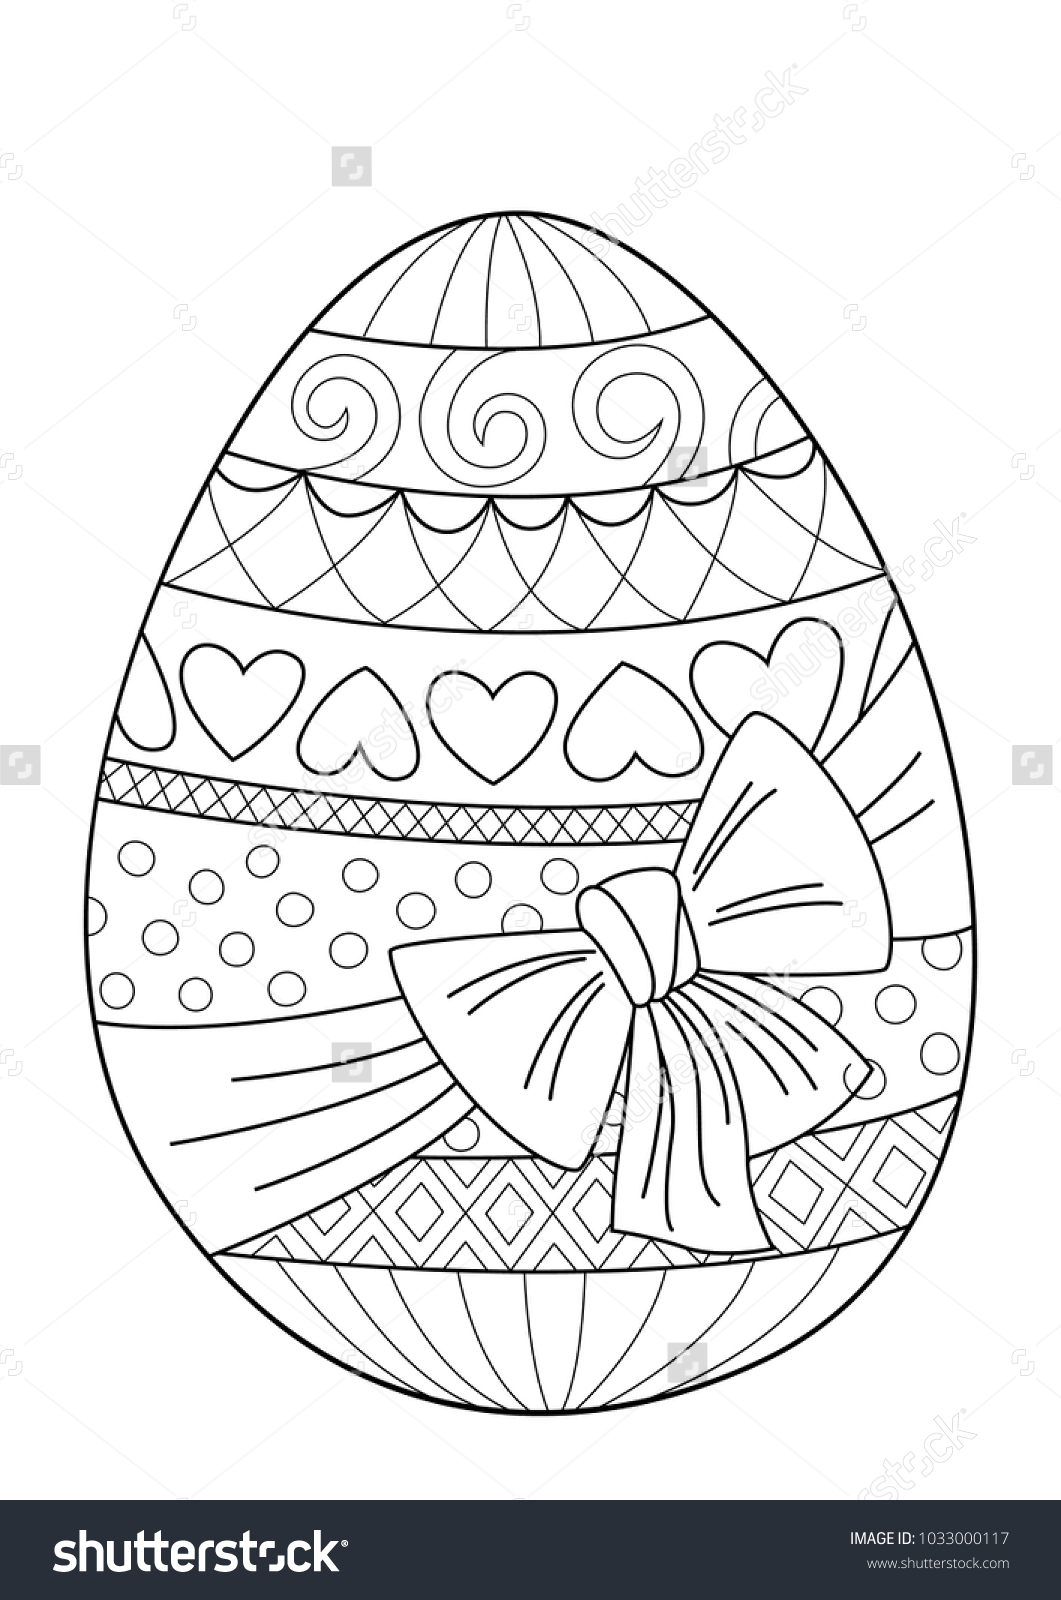 Doodle Coloring Book Page Easter Egg Stock Vector Royalty Free ...